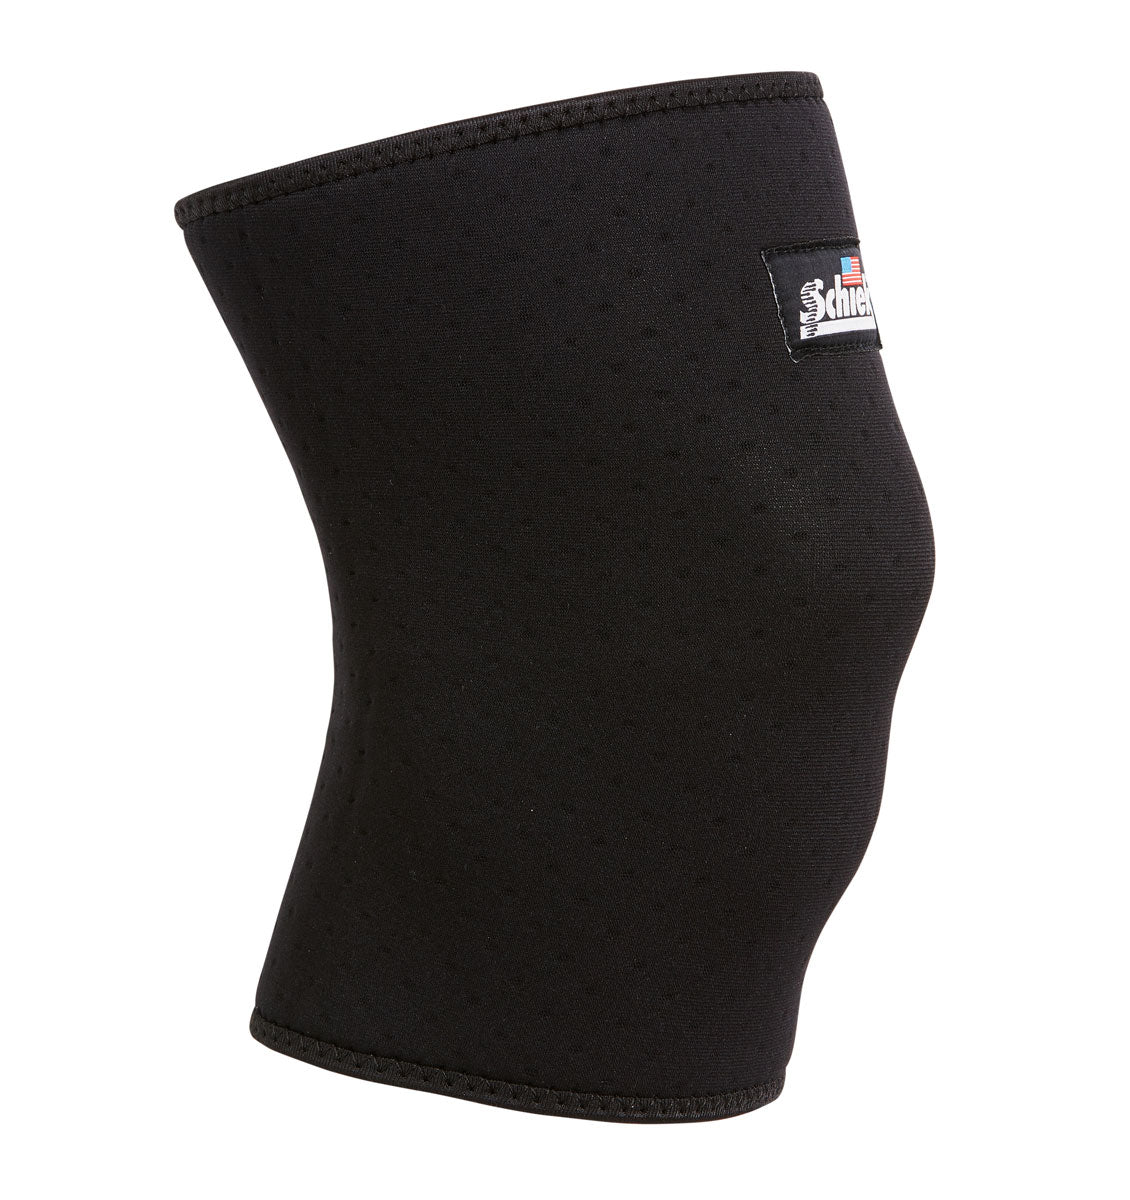 1150KS Schiek Knee Sleeves Side